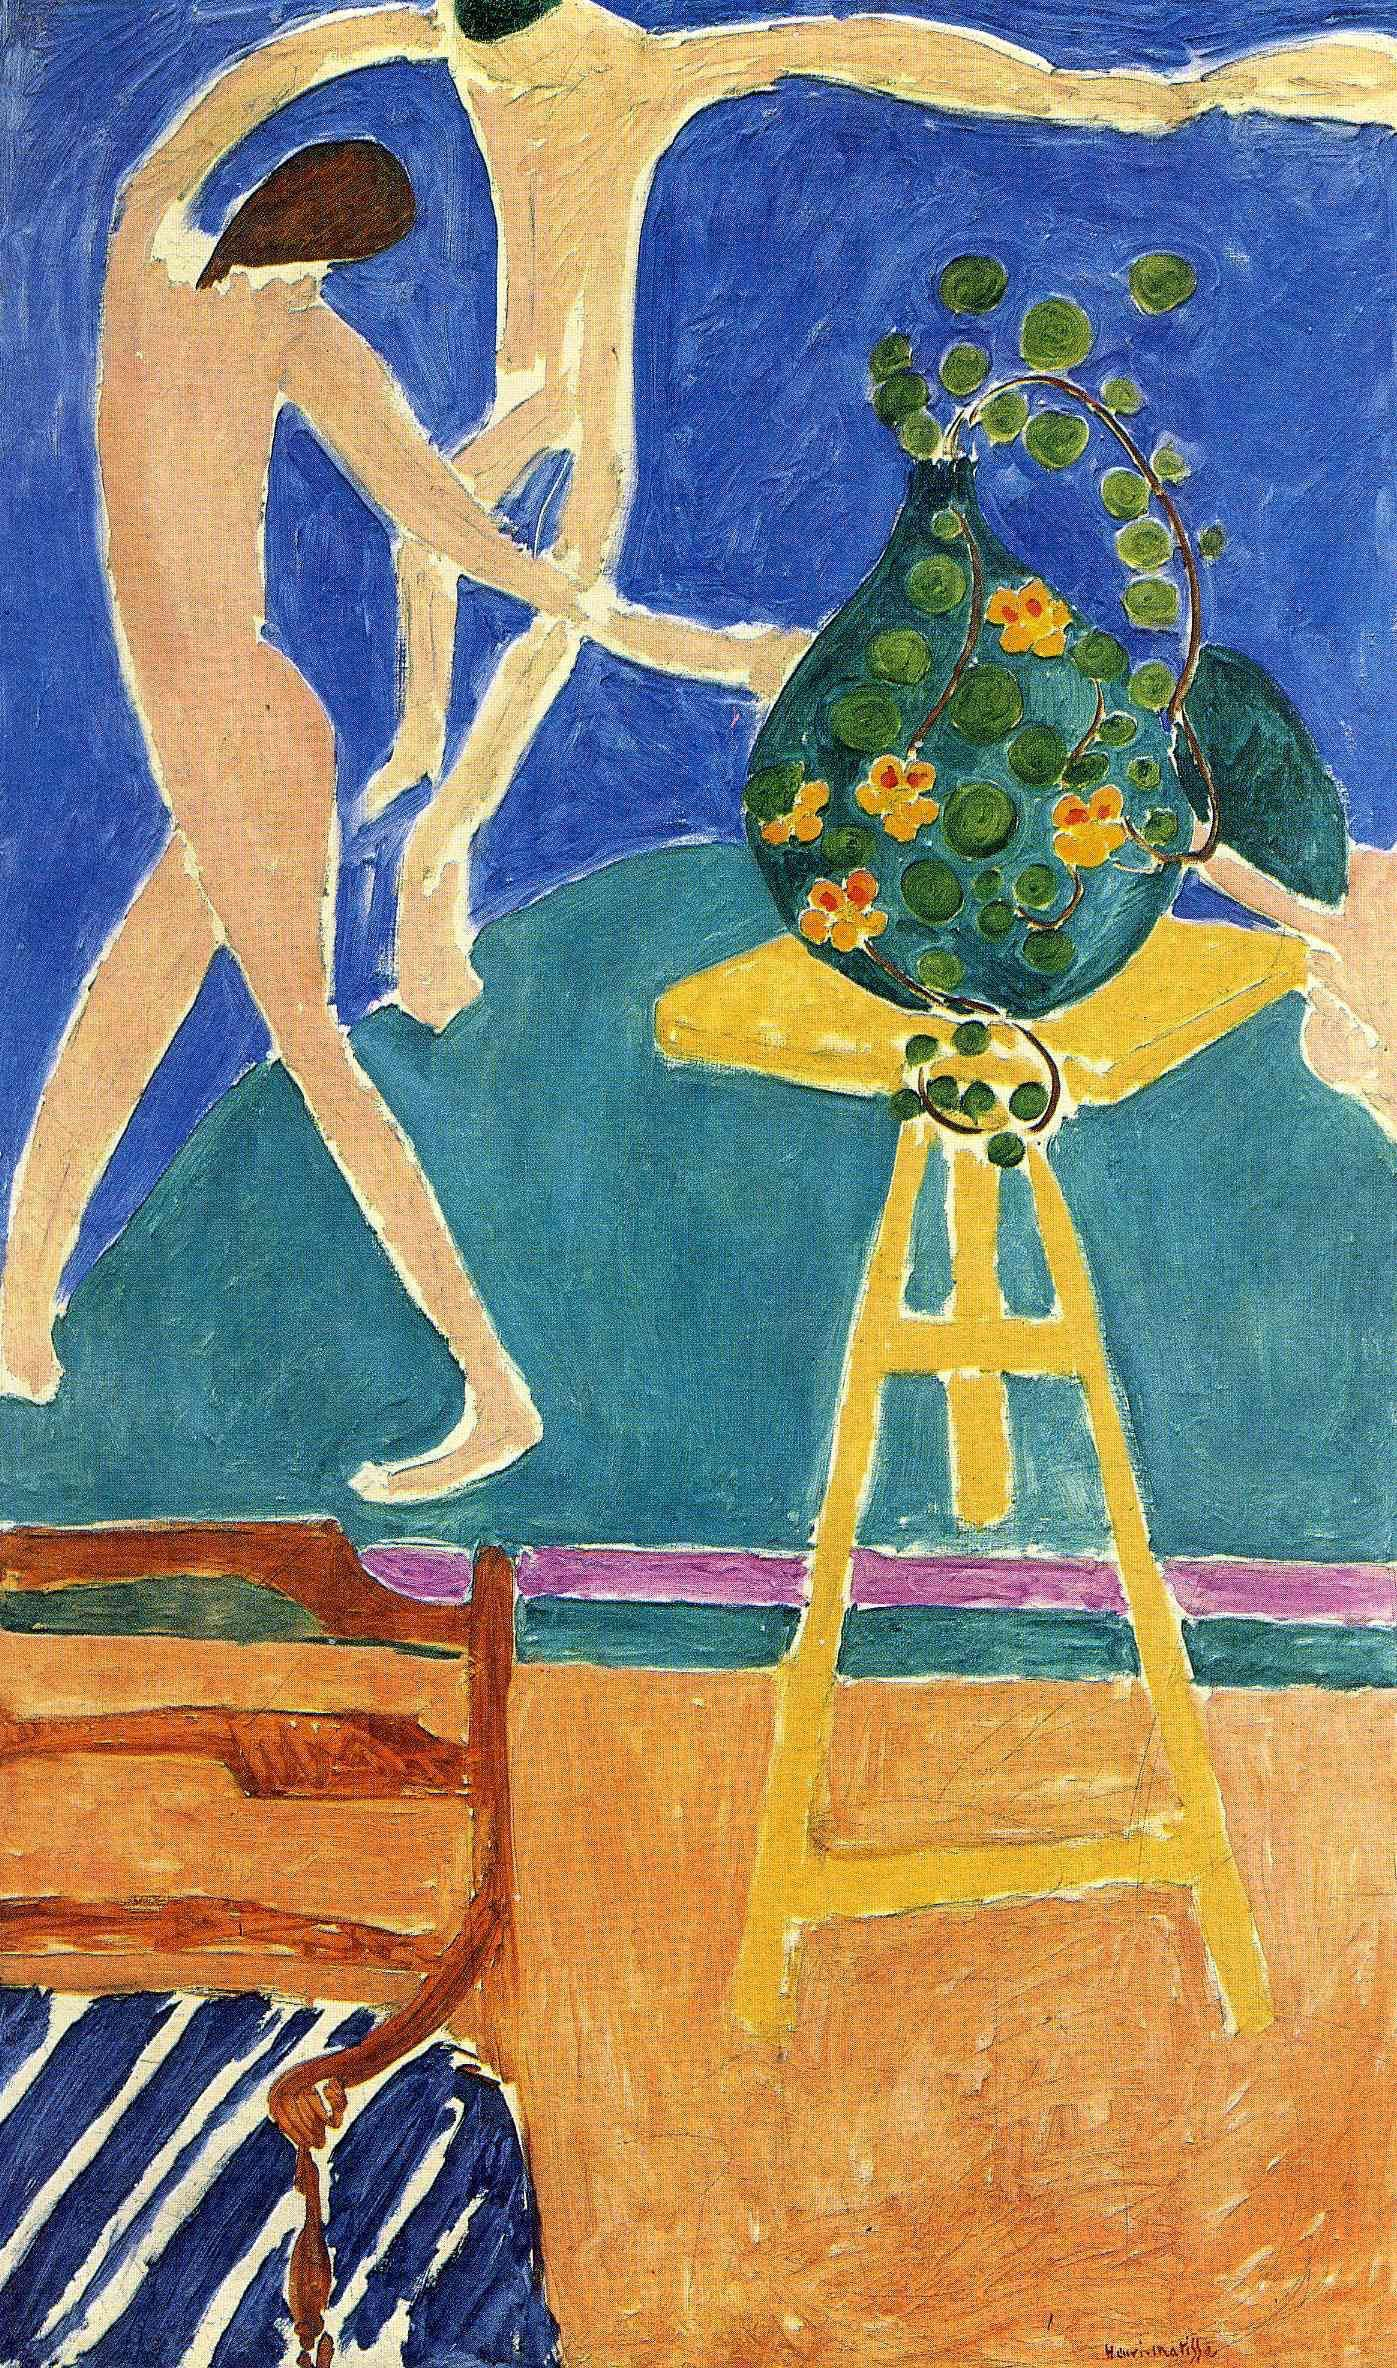 Figure 5 - As capuchinhas com a dança II (1912). Moscou, Museu Pushkin.